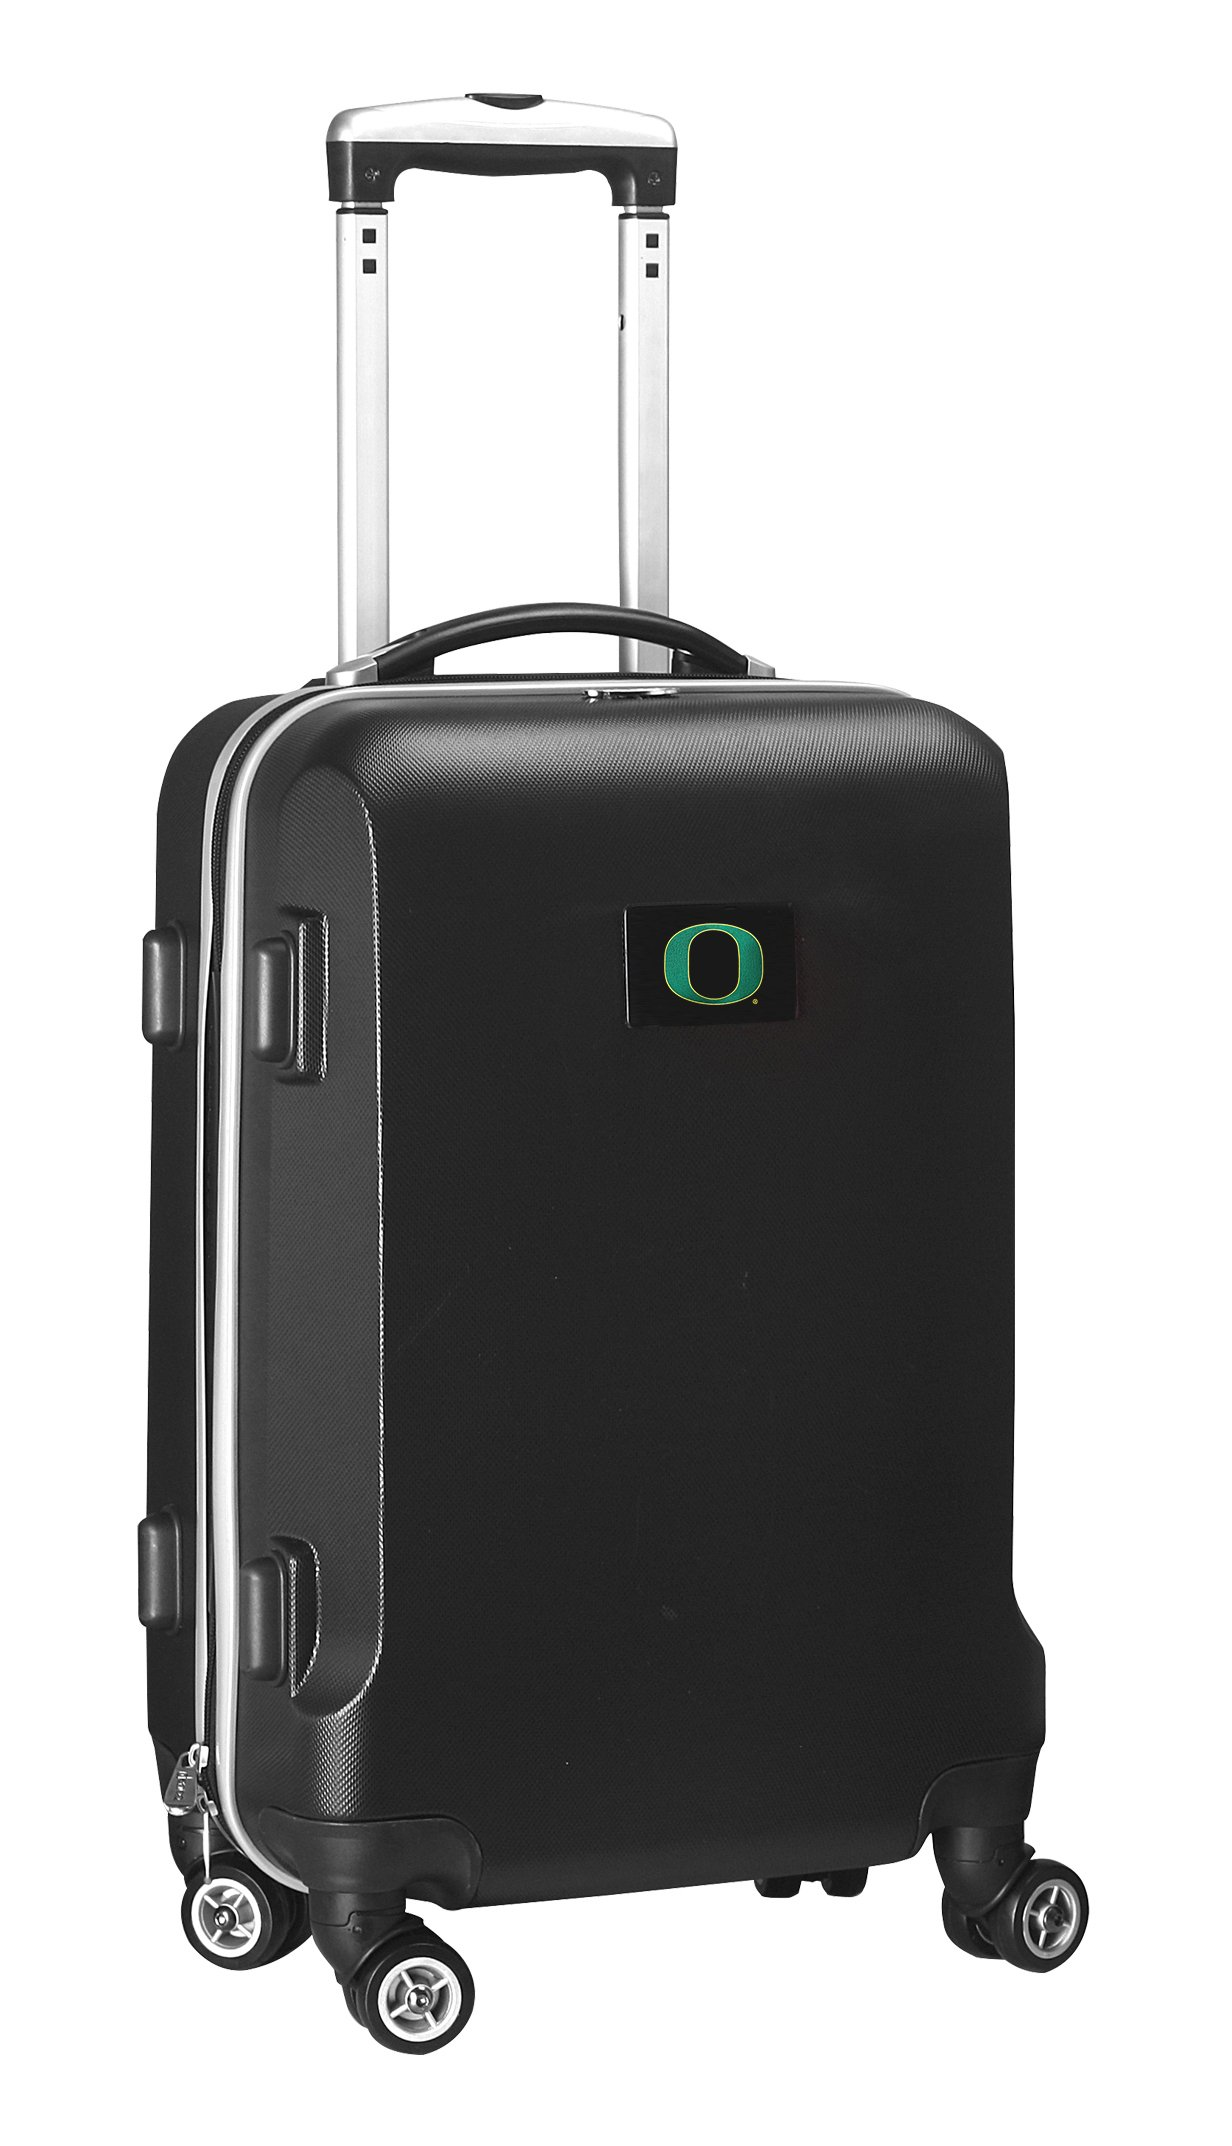 NCAA Oregon Ducks Carry-On Hardcase Spinner, Black by Denco